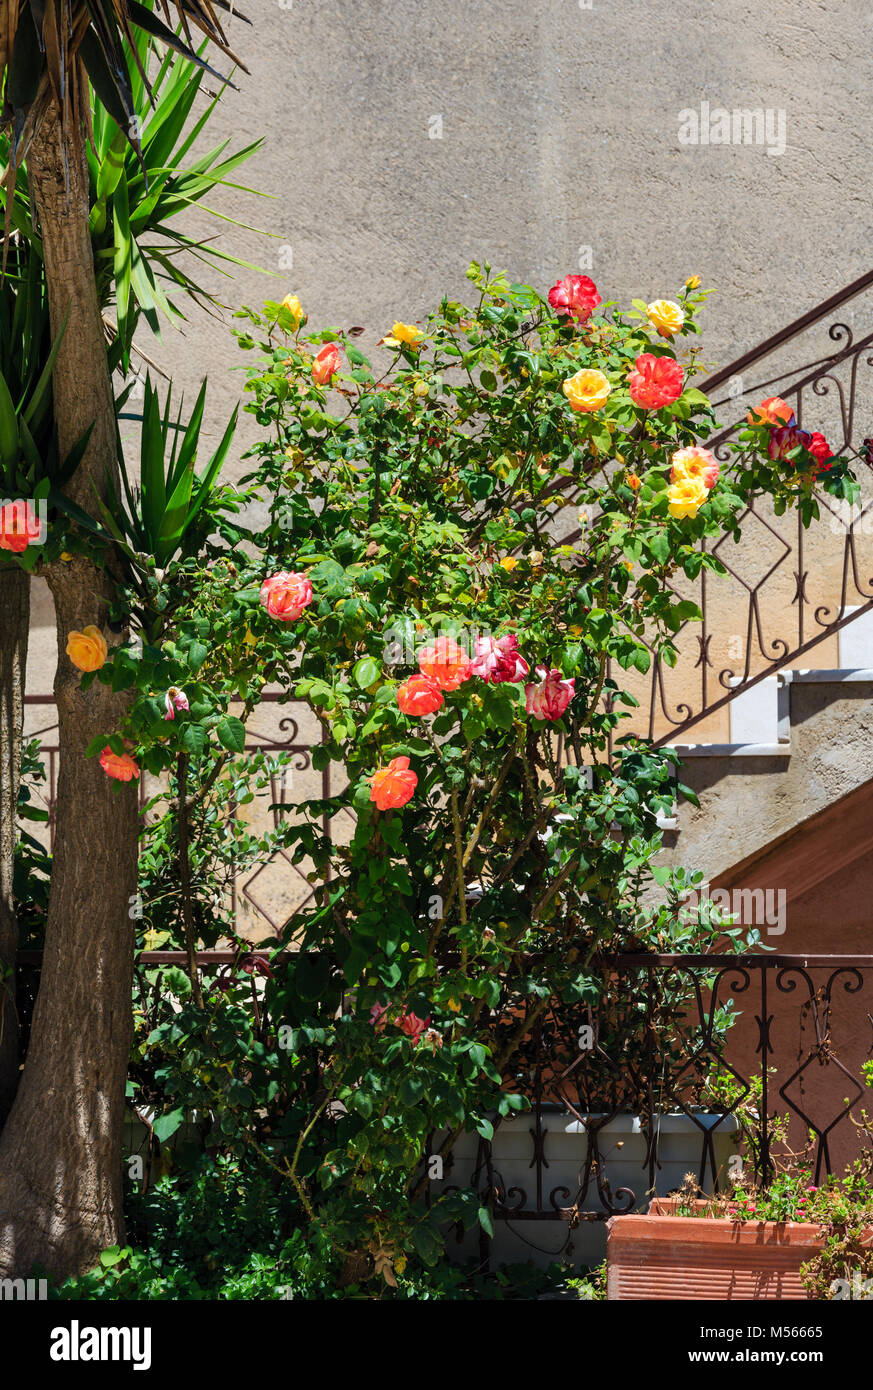 Rose bush near staircase. - Stock Image